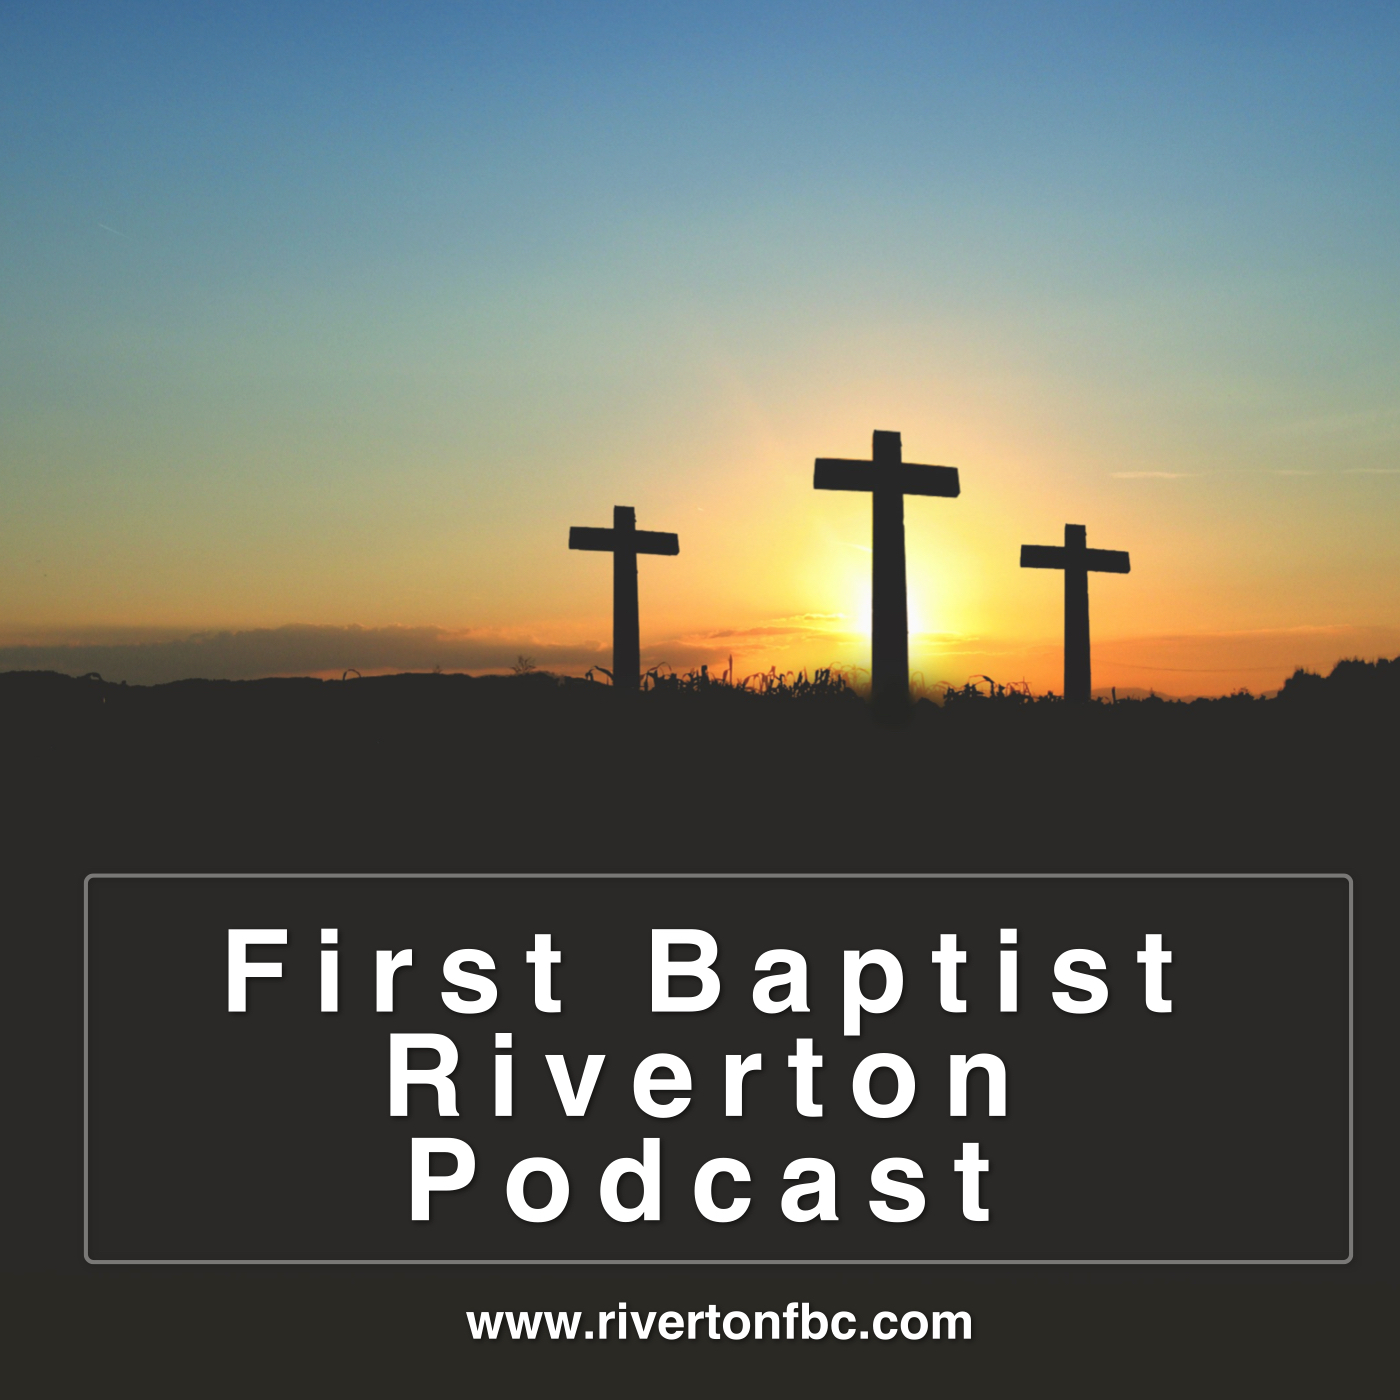 FBCR Podcast EP75 - Sunday Morning Message from Bro. Michael Pearce